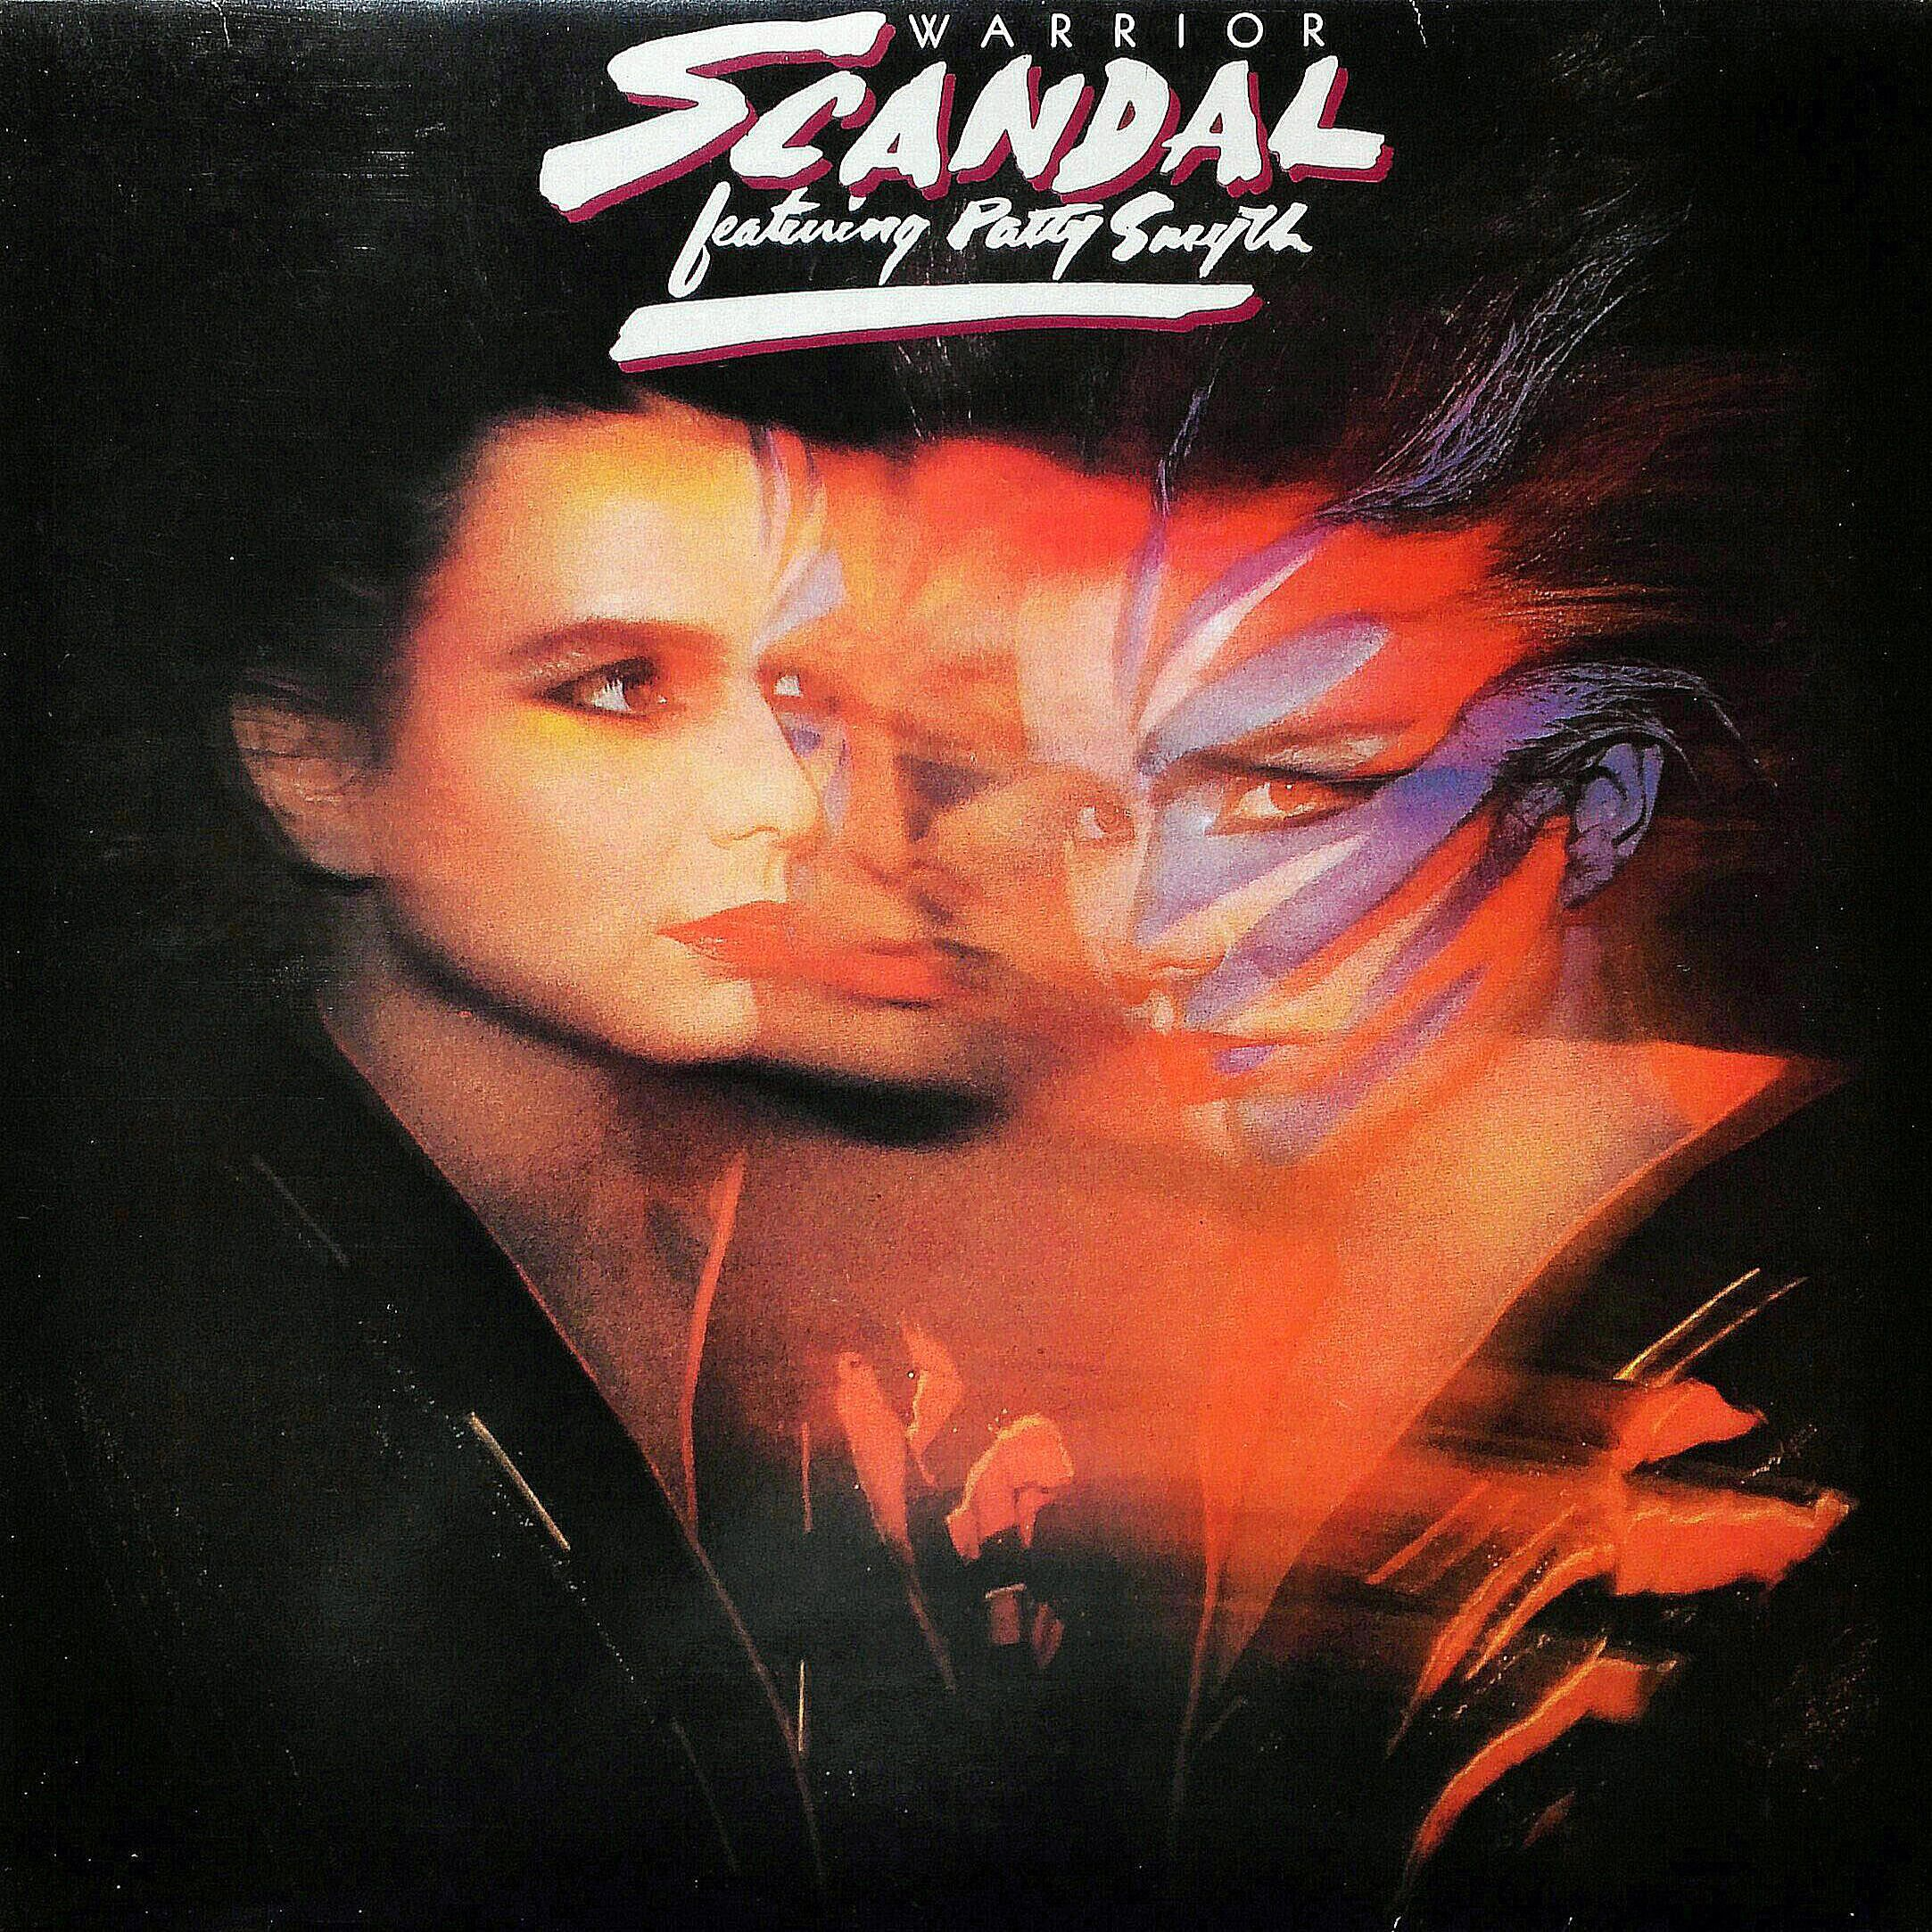 Greatest Hits Featuring Scandal Patty Smyth: Top Scandal And Patty Smyth Solo Songs Of The '80s